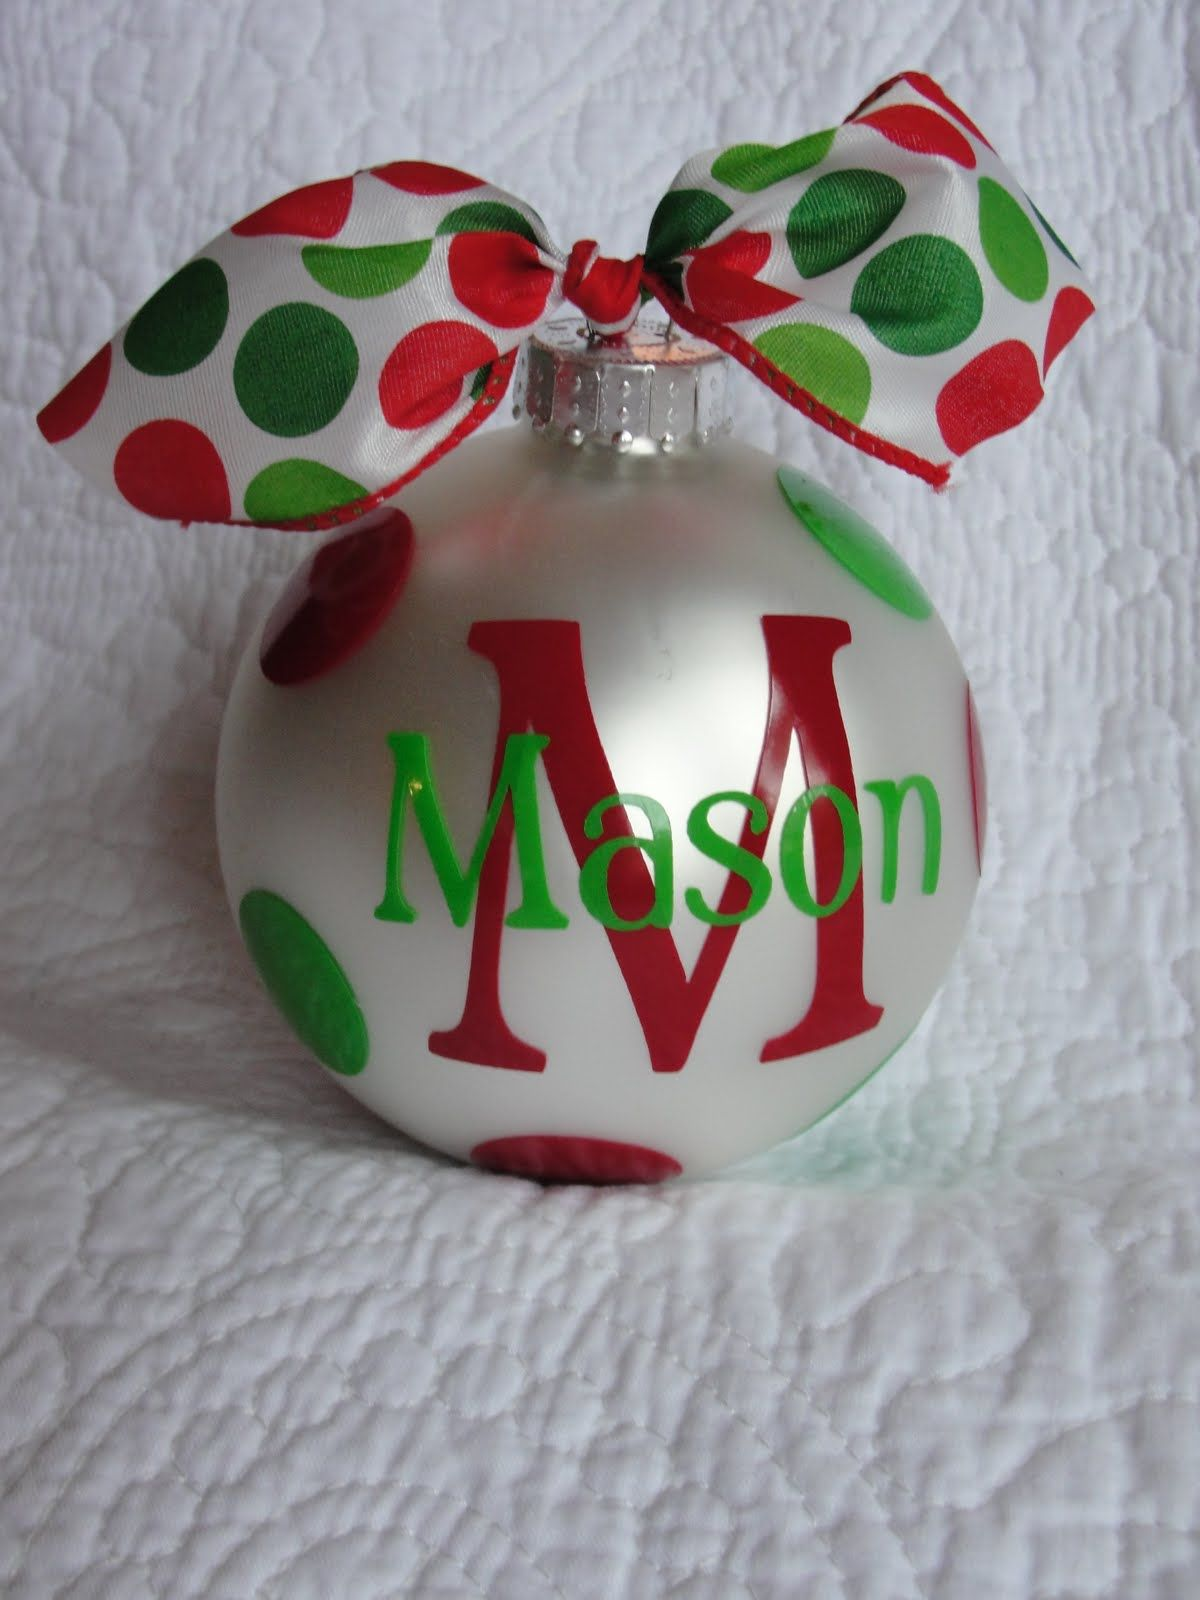 101 handmade christmas ornament ideas - 101 Handmade Christmas Ornament Ideas 0